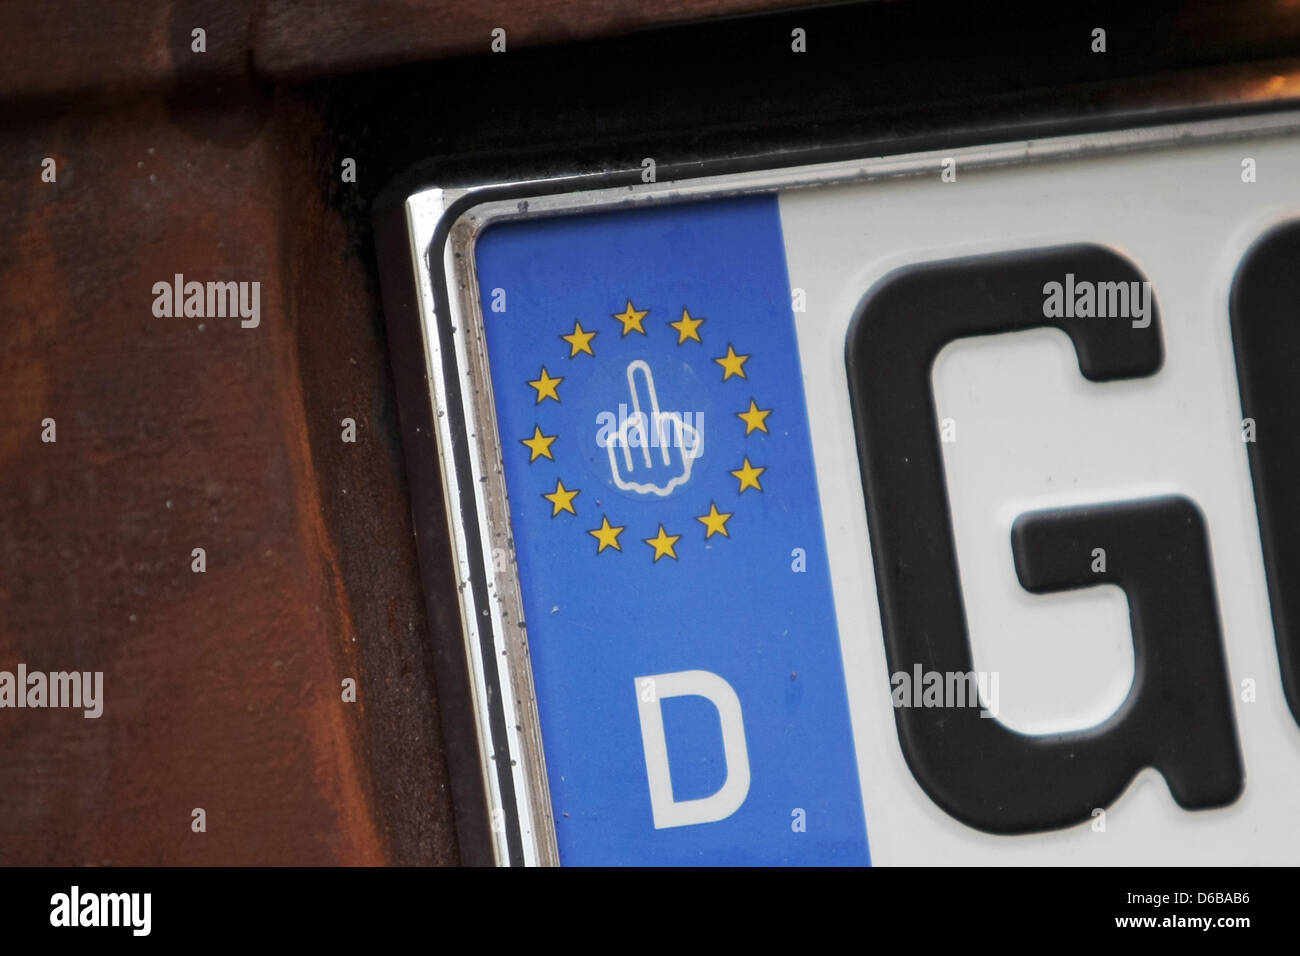 European flag with stars in the middle the federal eagle european a car owner has stuck a picture of a middle finger in the middle of the biocorpaavc Images